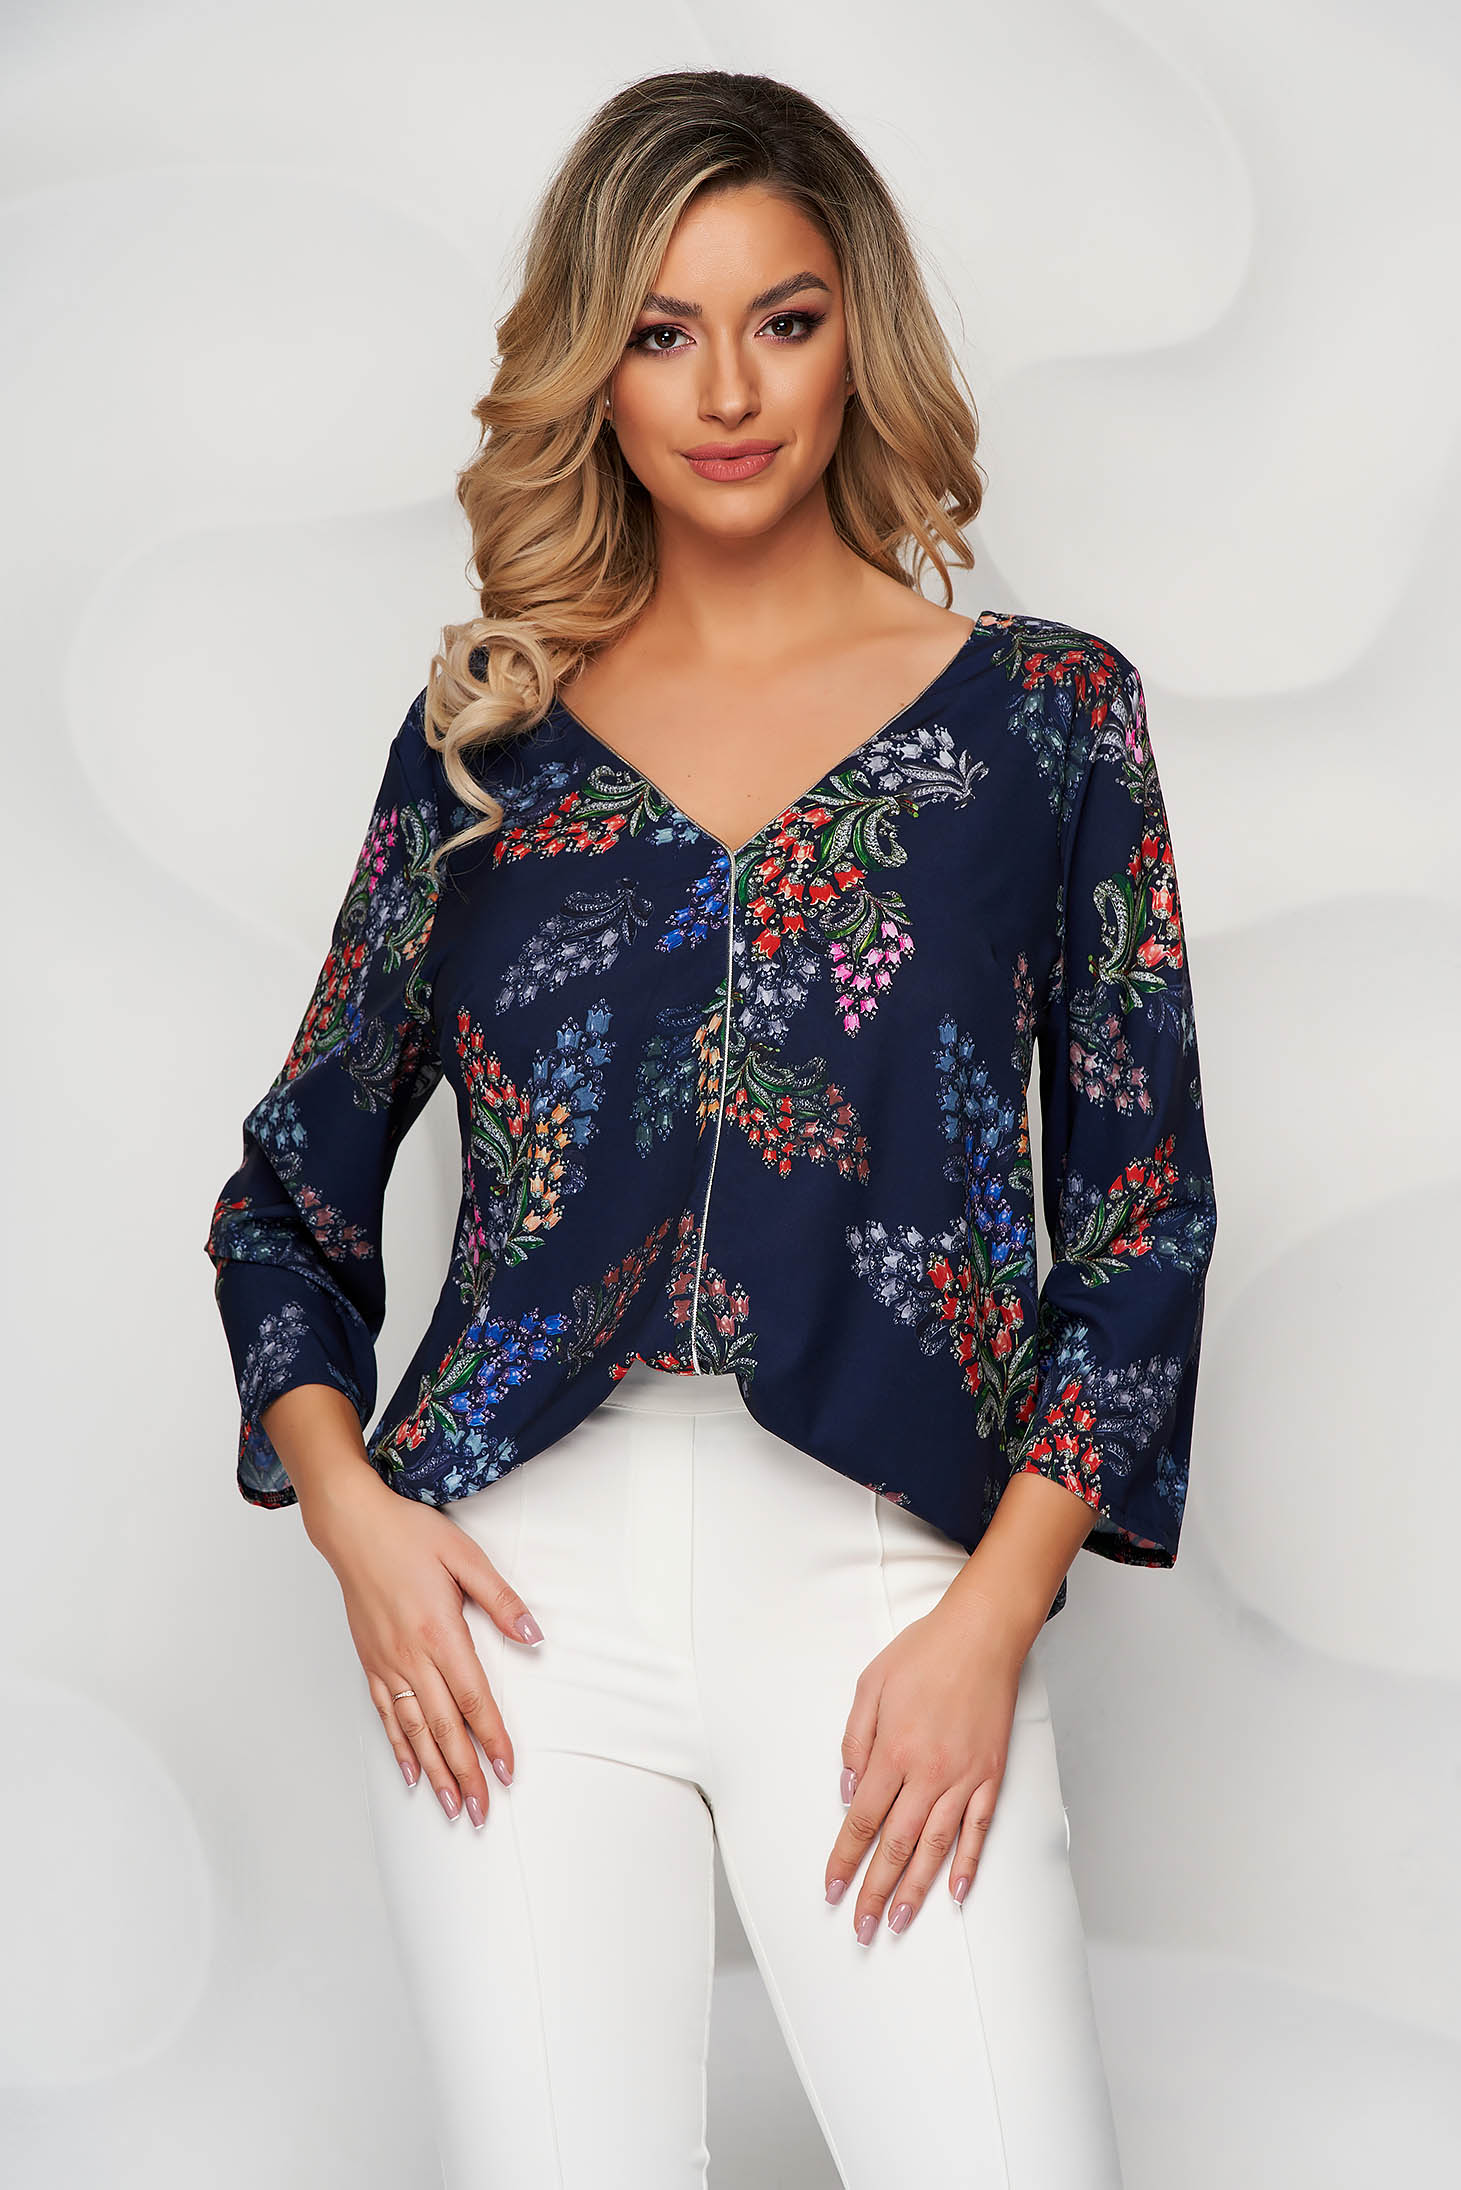 StarShinerS silver women`s blouse with floral print v back neckline airy fabric